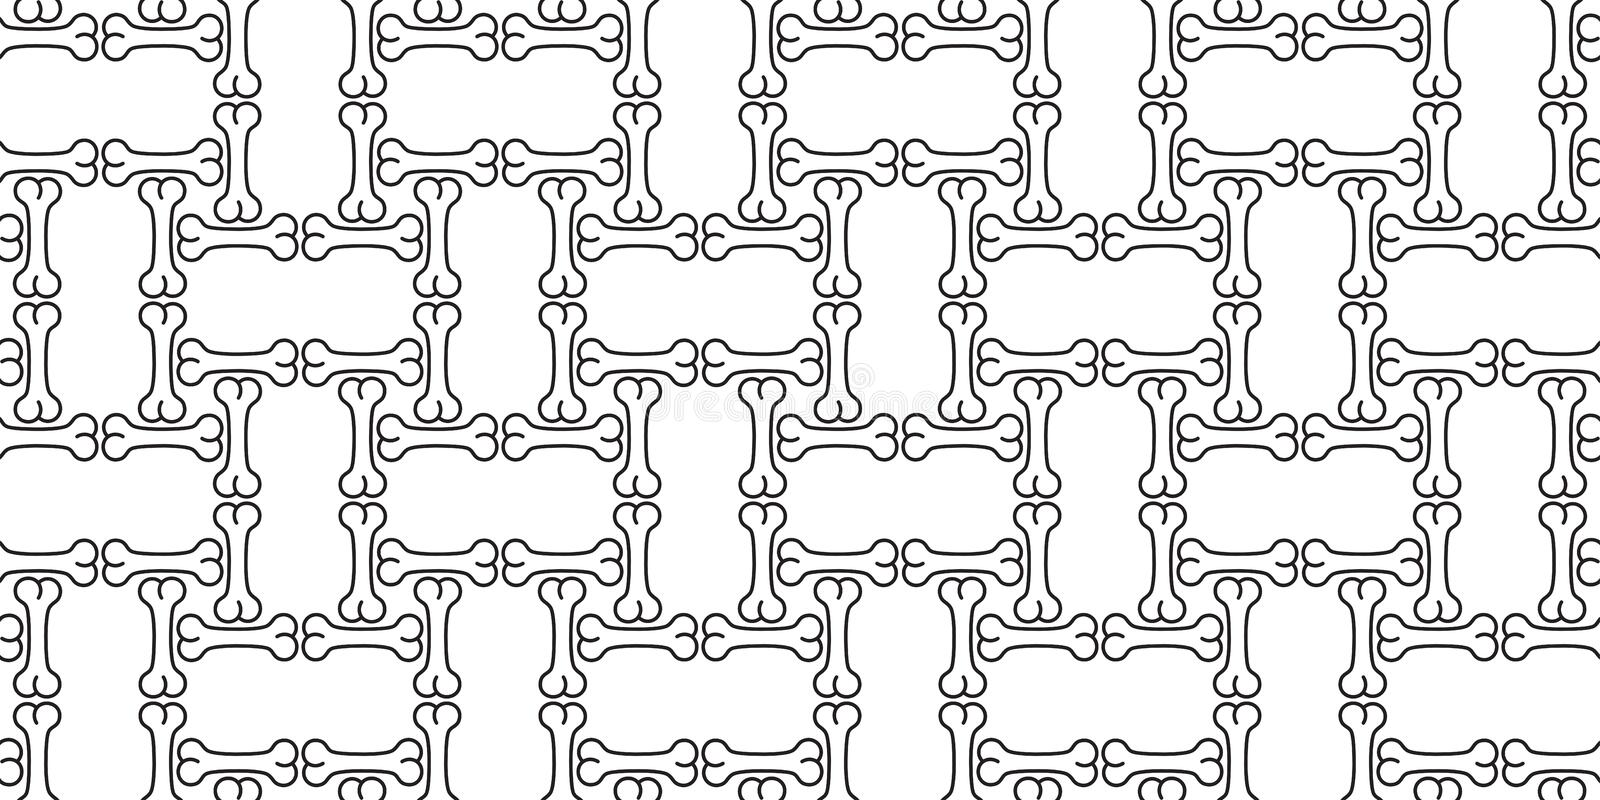 Dog bone seamless pattern vector Halloween french bulldog scarf isolated wallpaper repeat tile background. Dog bone seamless pattern vector Halloween french royalty free illustration